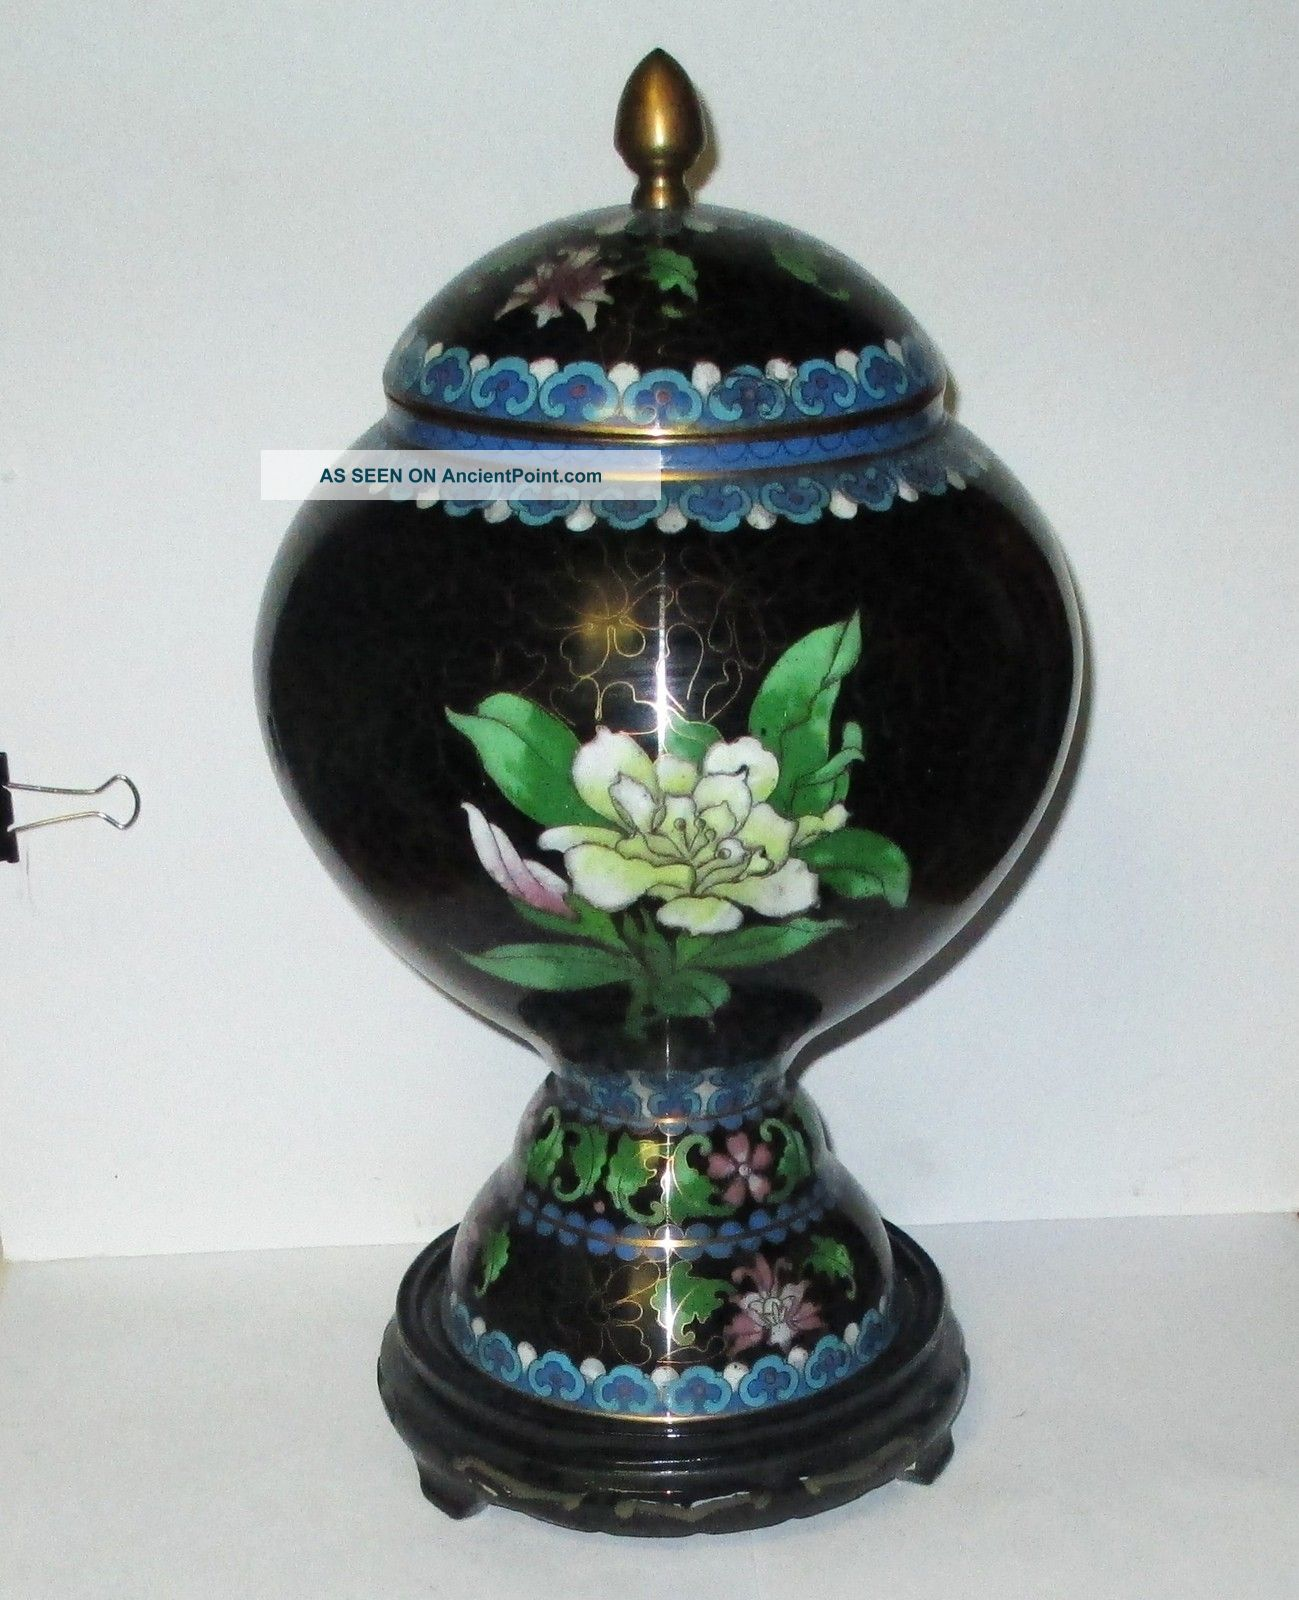 Huge Chinese Cloisonne Enamel Floral Bird Compote Lided Vase Jar Box With Stand Boxes photo